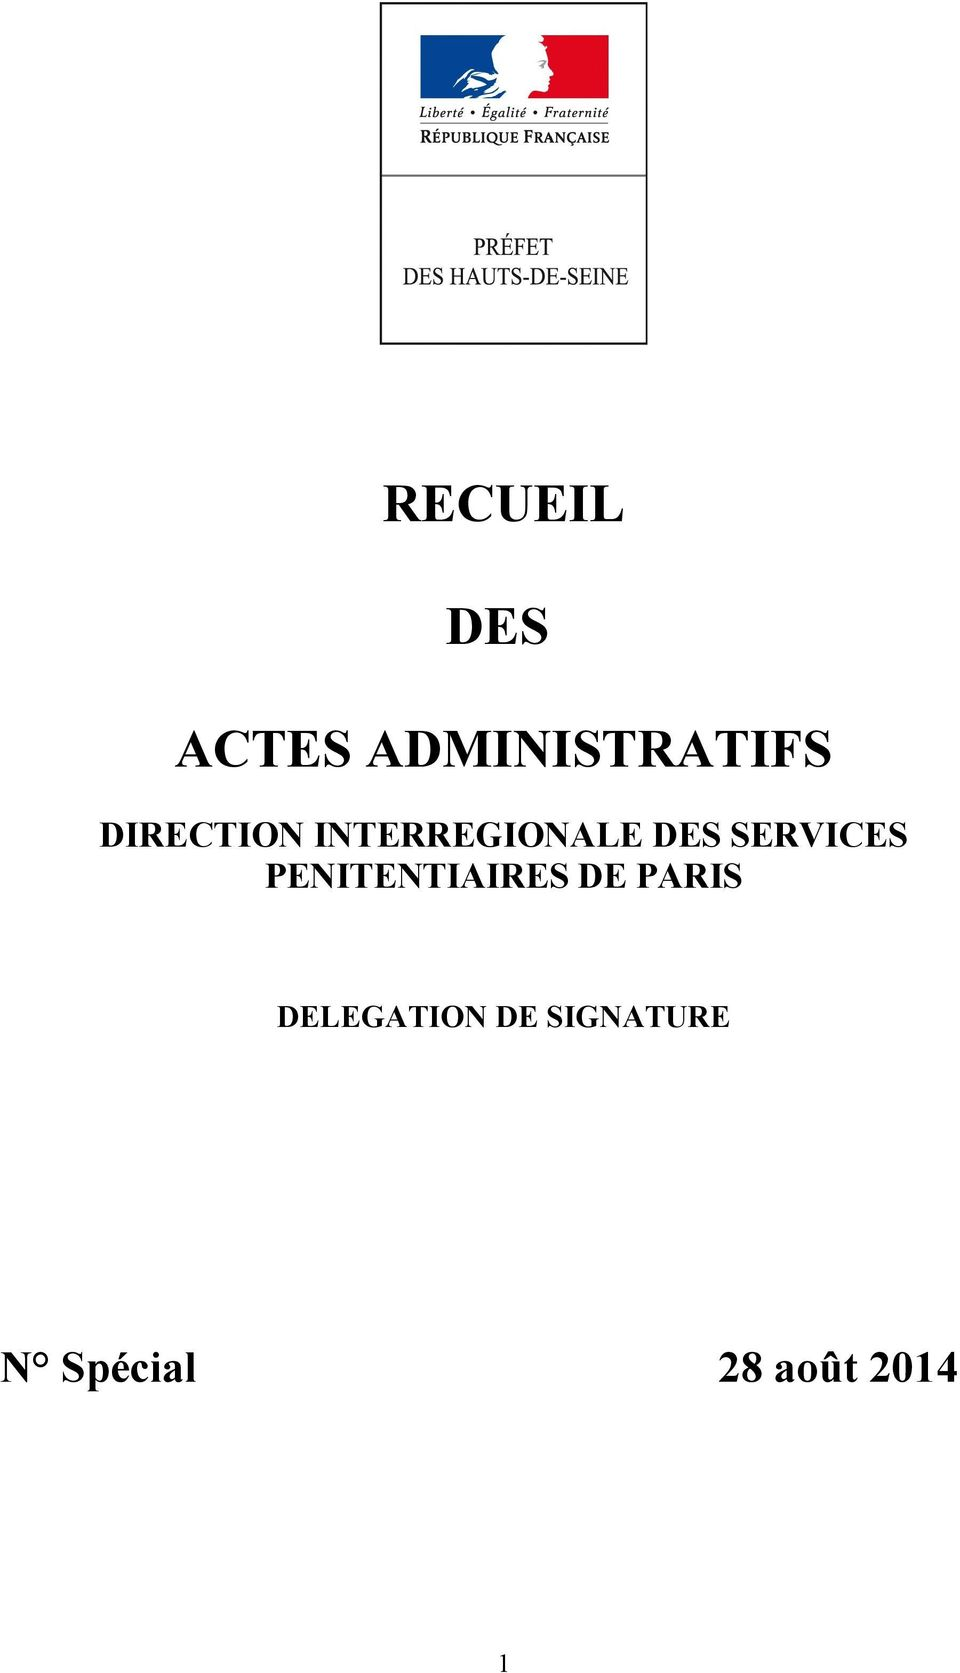 SERVICES PENITENTIAIRES DE PARIS